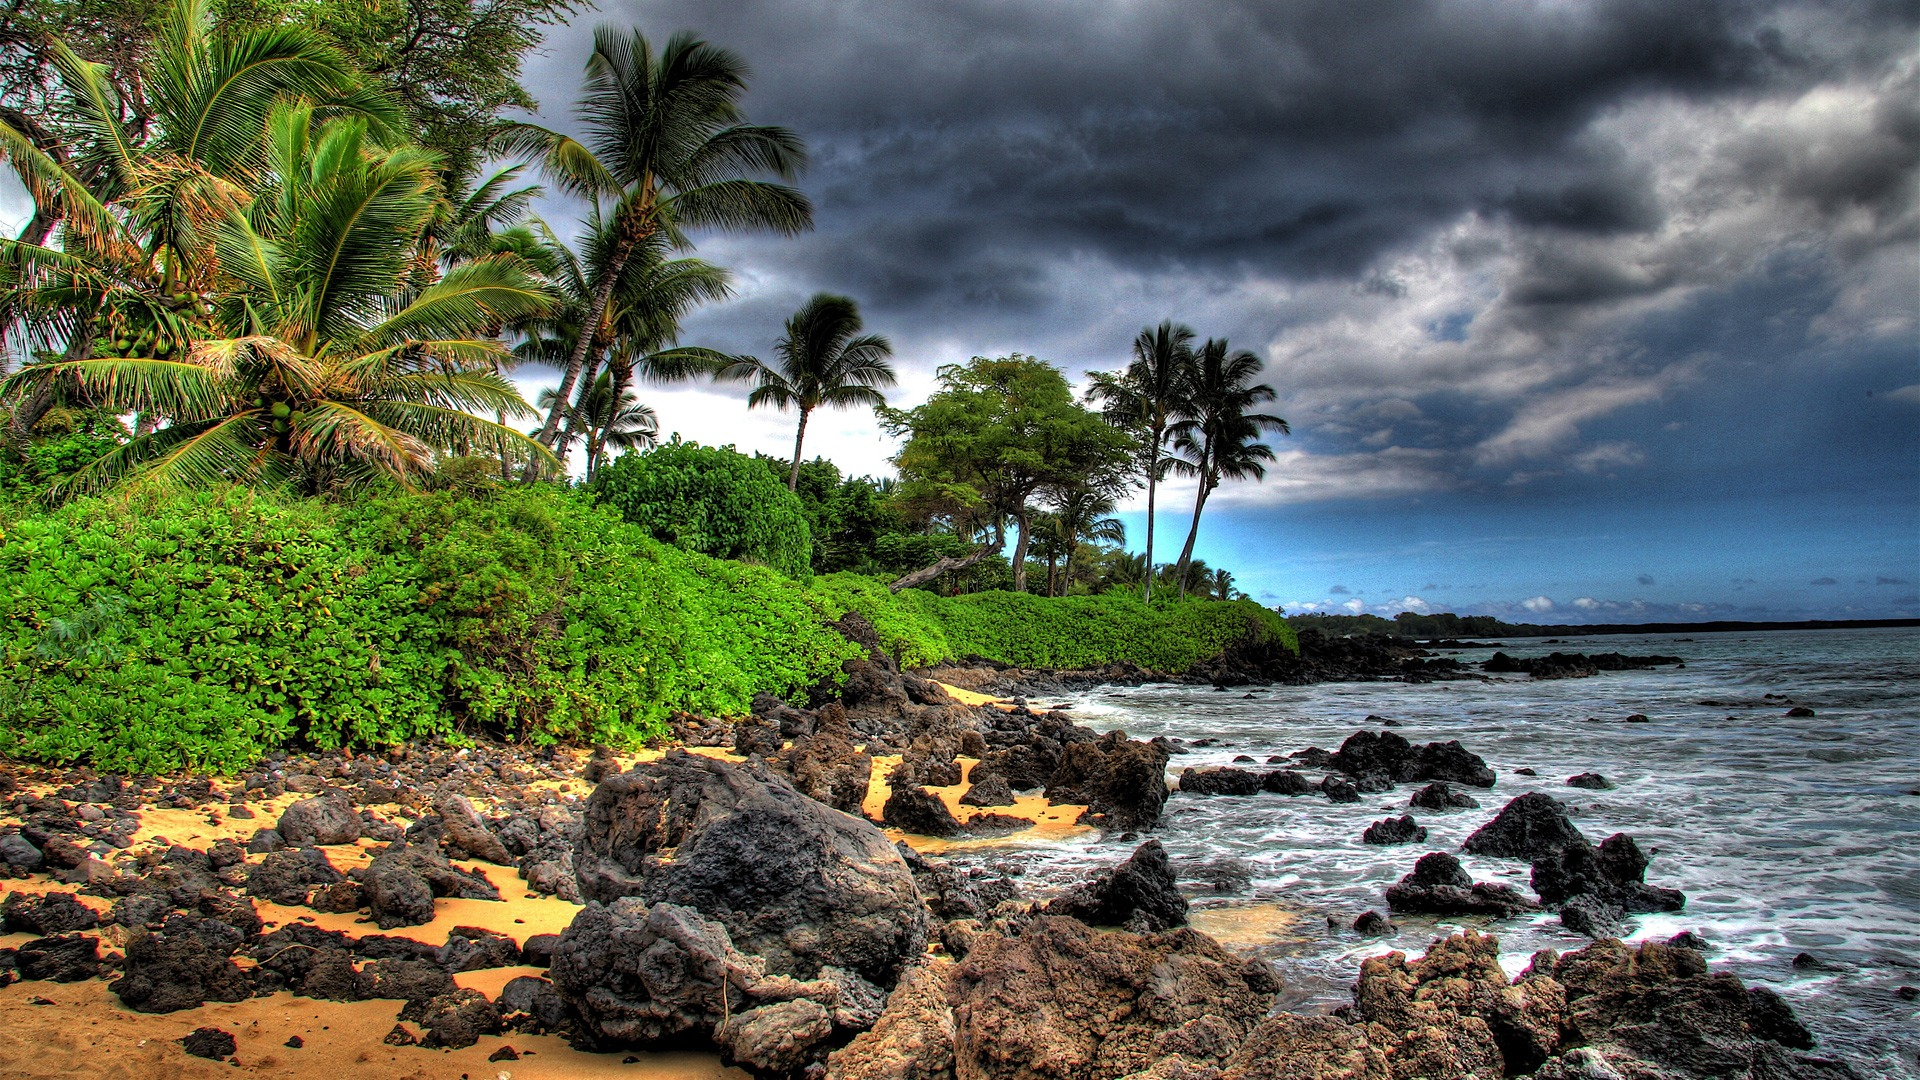 Maui Wallpaper Hawaii World Wallpapers in jpg format for free download